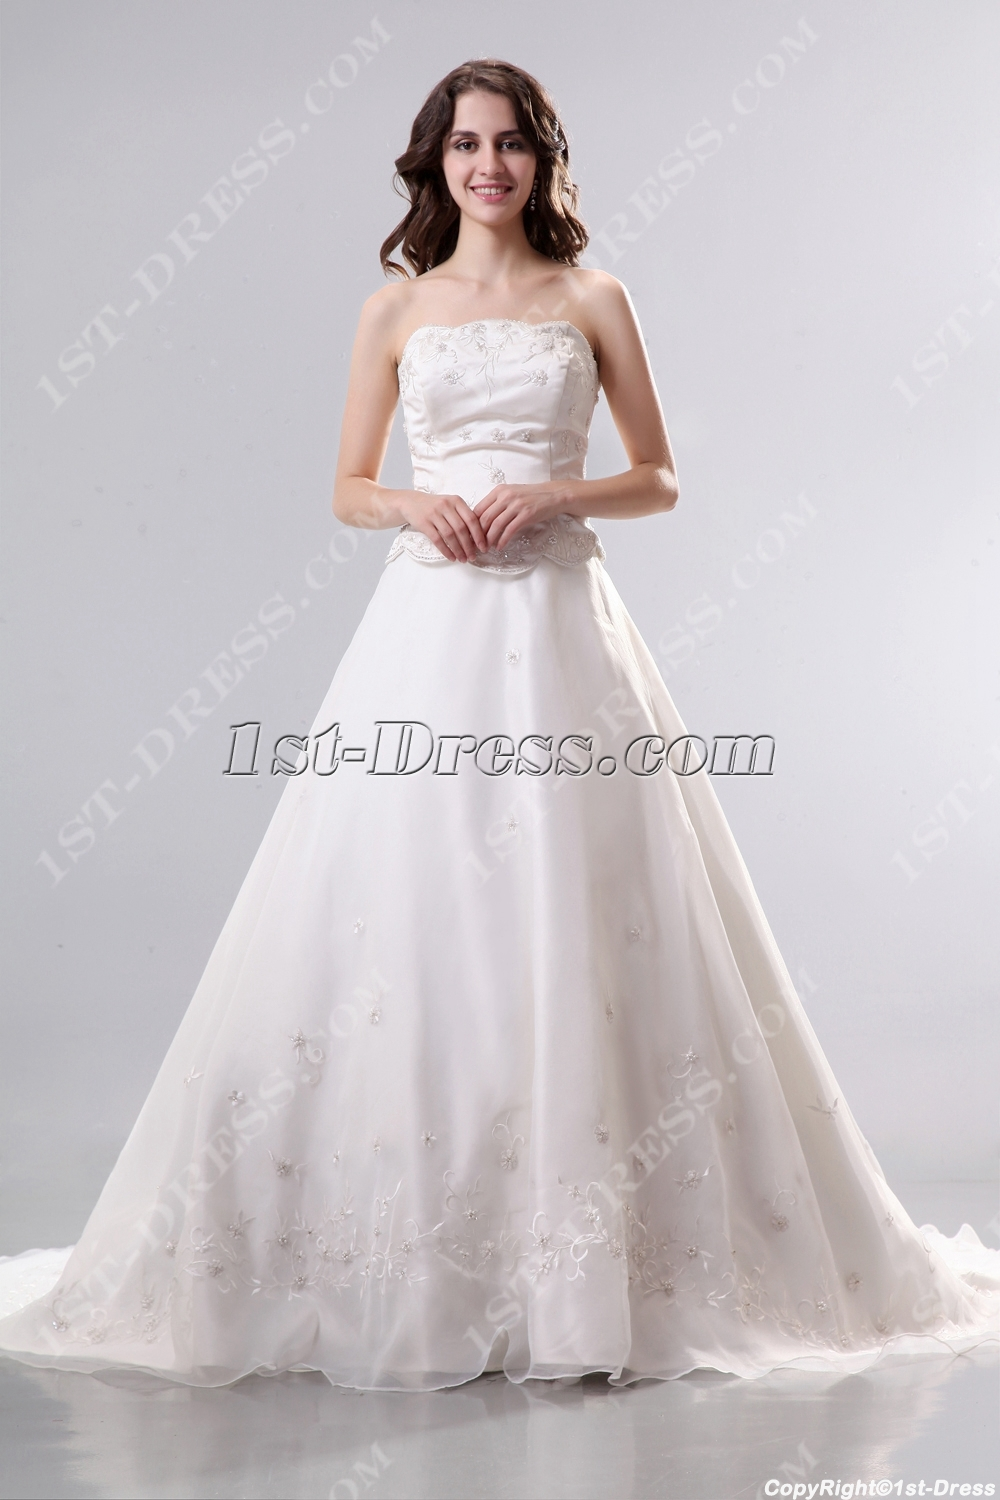 images/201311/big/Ivory-Strapless-Mock-Two-in-One-Organza-Bridal-Gown-3500-b-1-1384269251.jpg